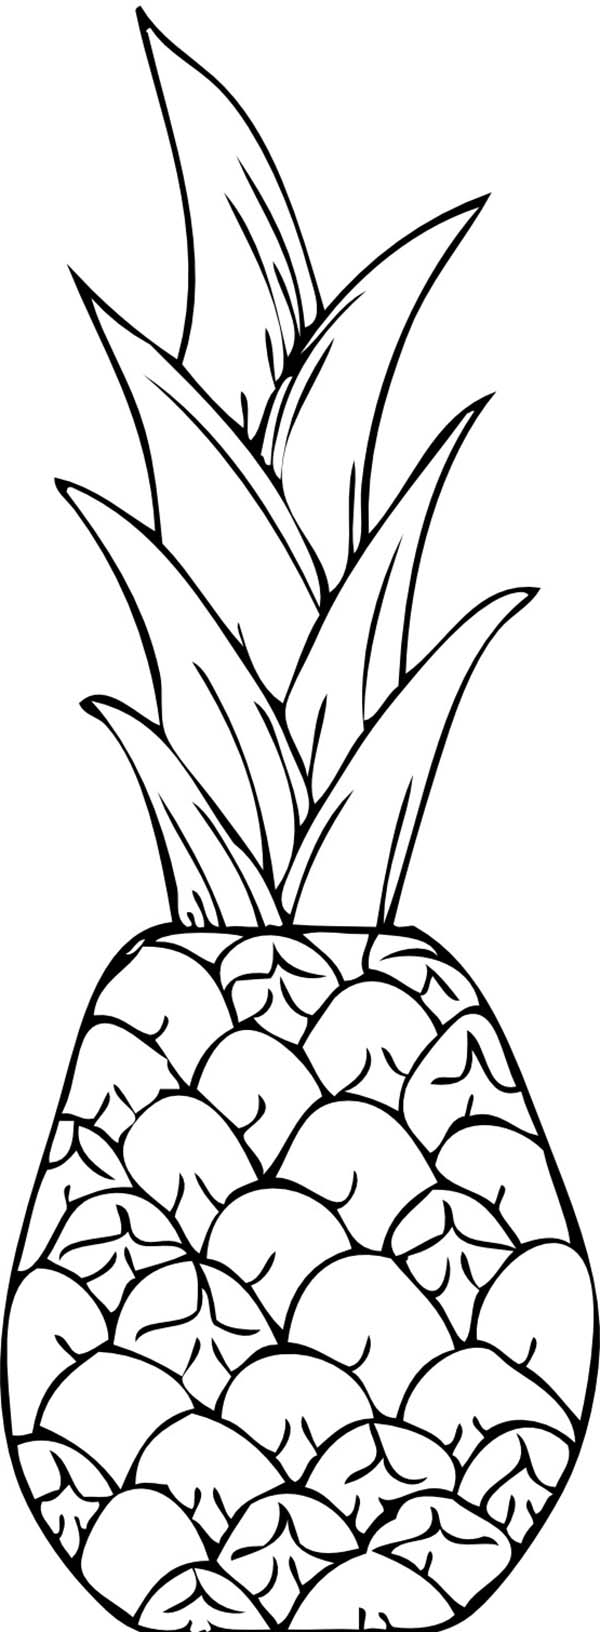 pineapple line drawing pineapple line drawing free download on clipartmag line drawing pineapple